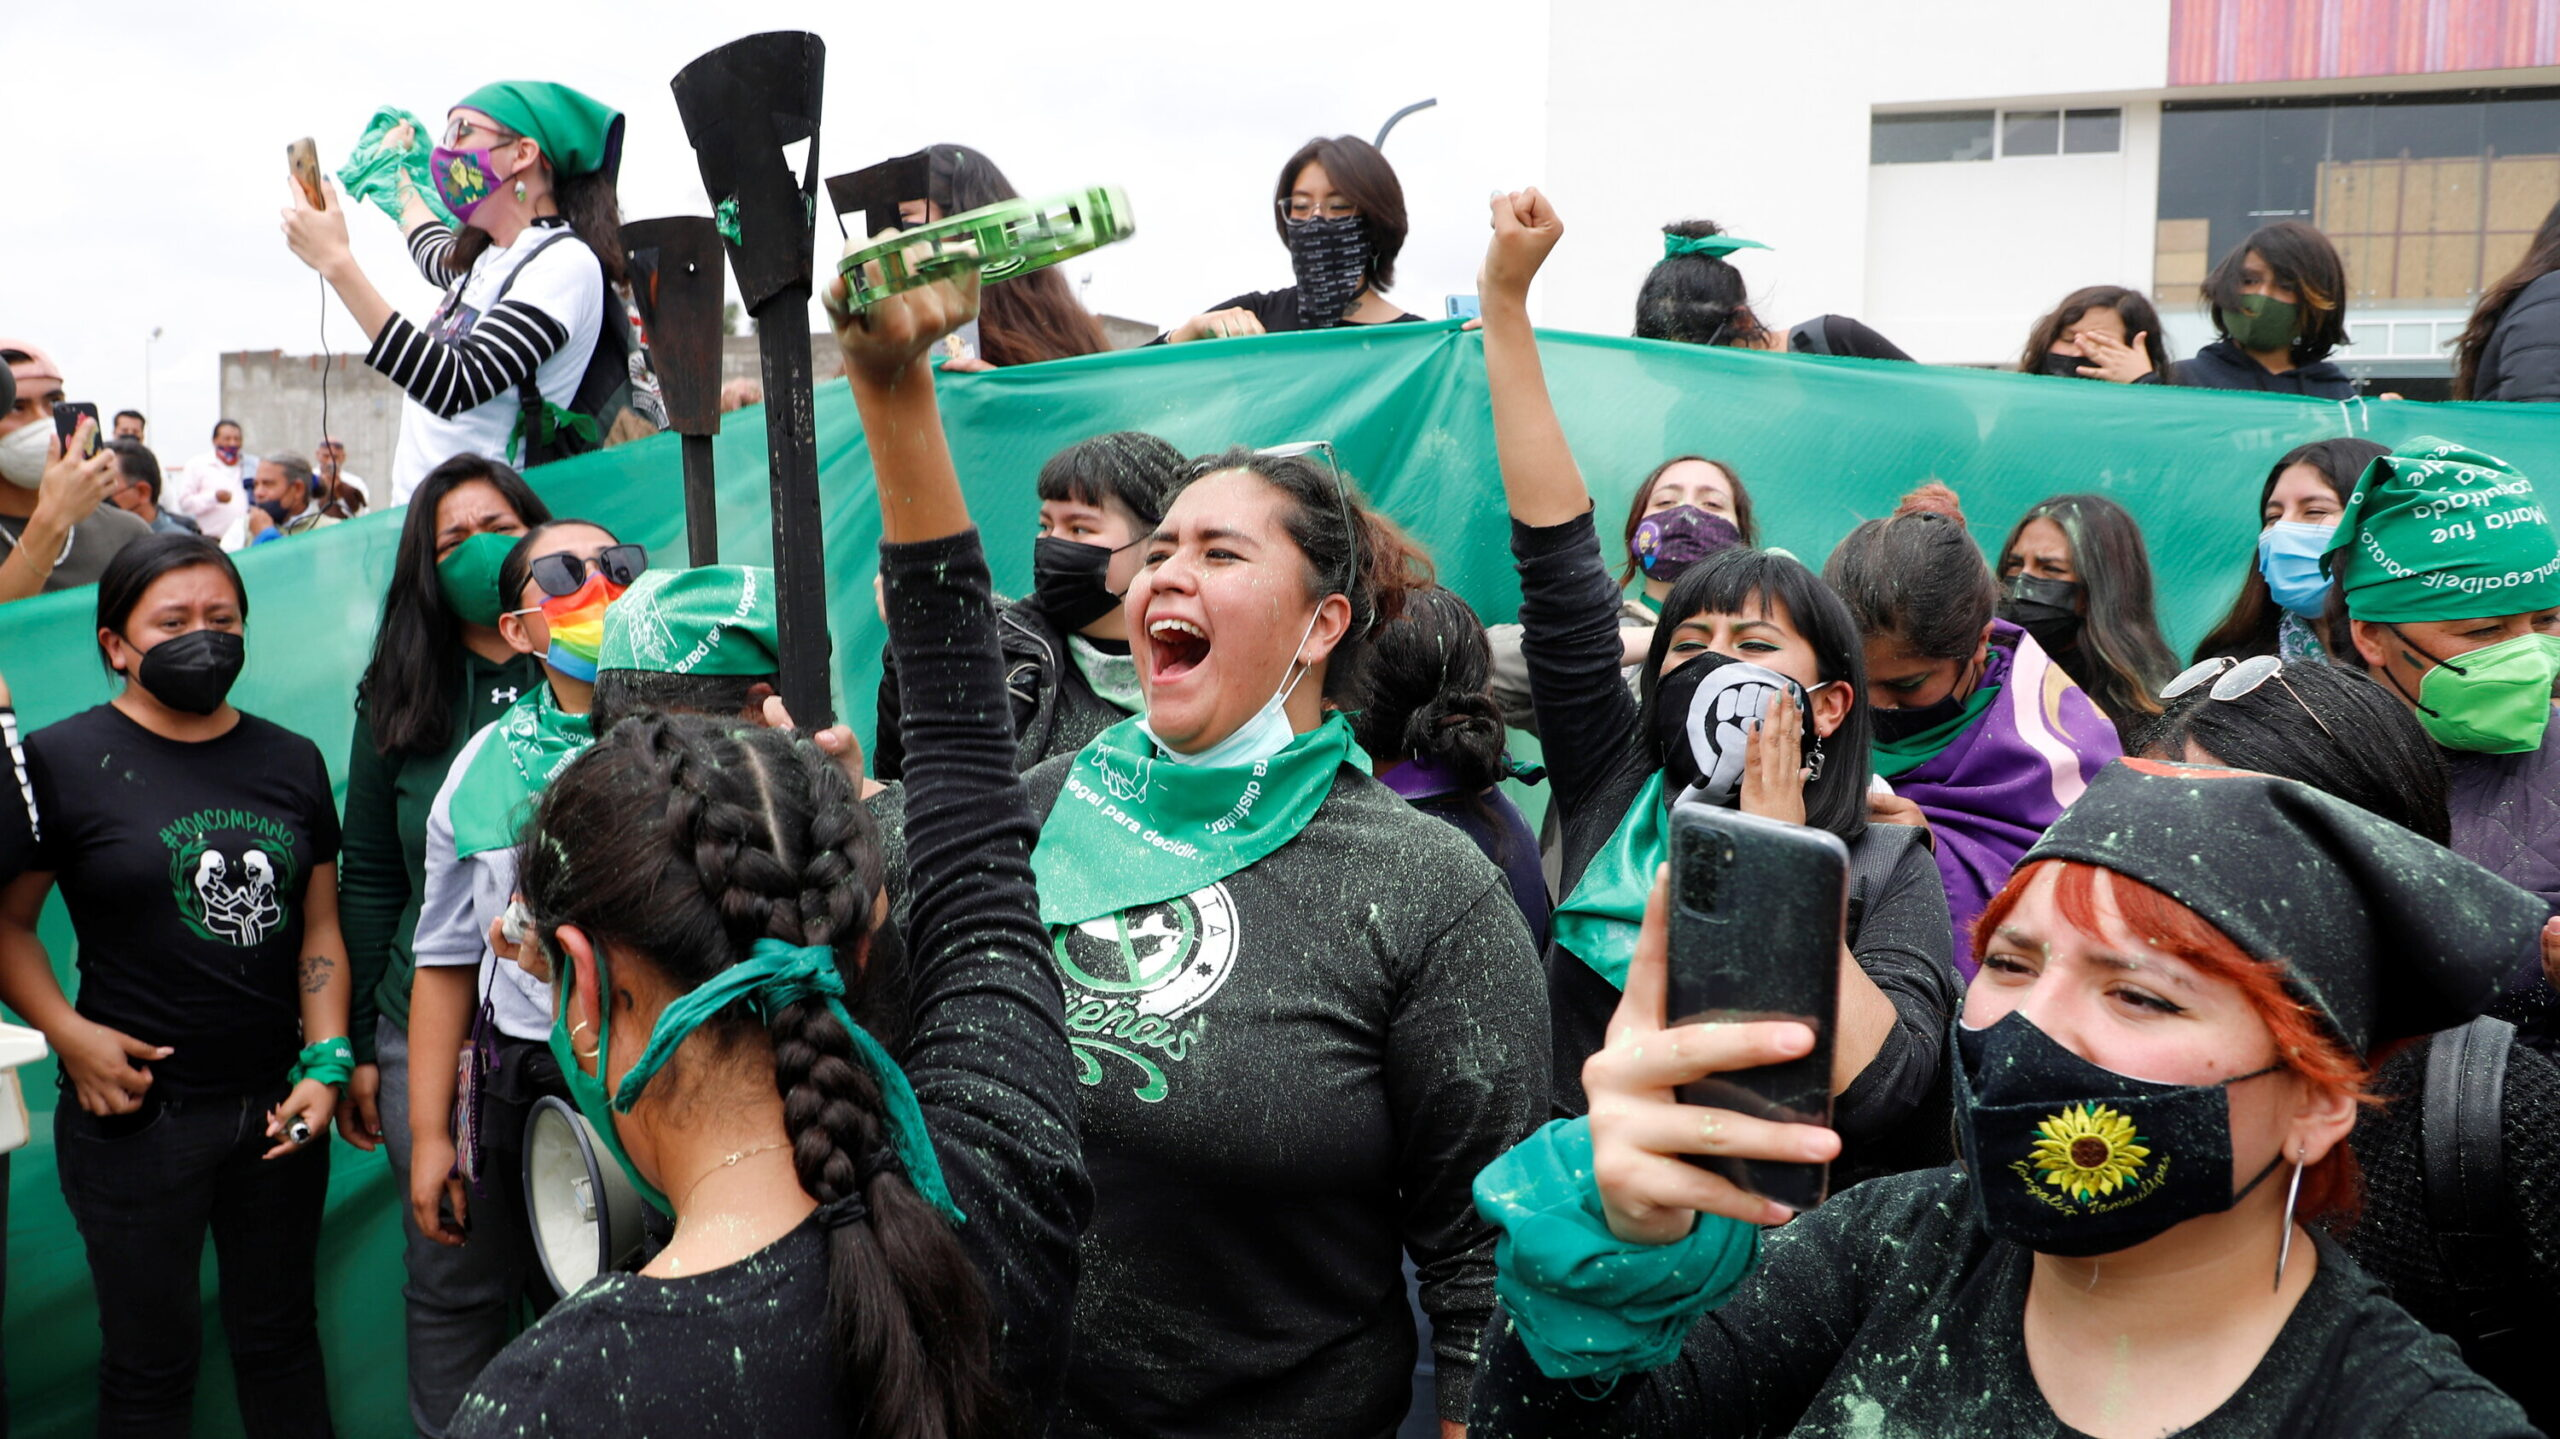 Mexico's Supreme Court Votes to Decriminalize Abortion - The New York Times 1